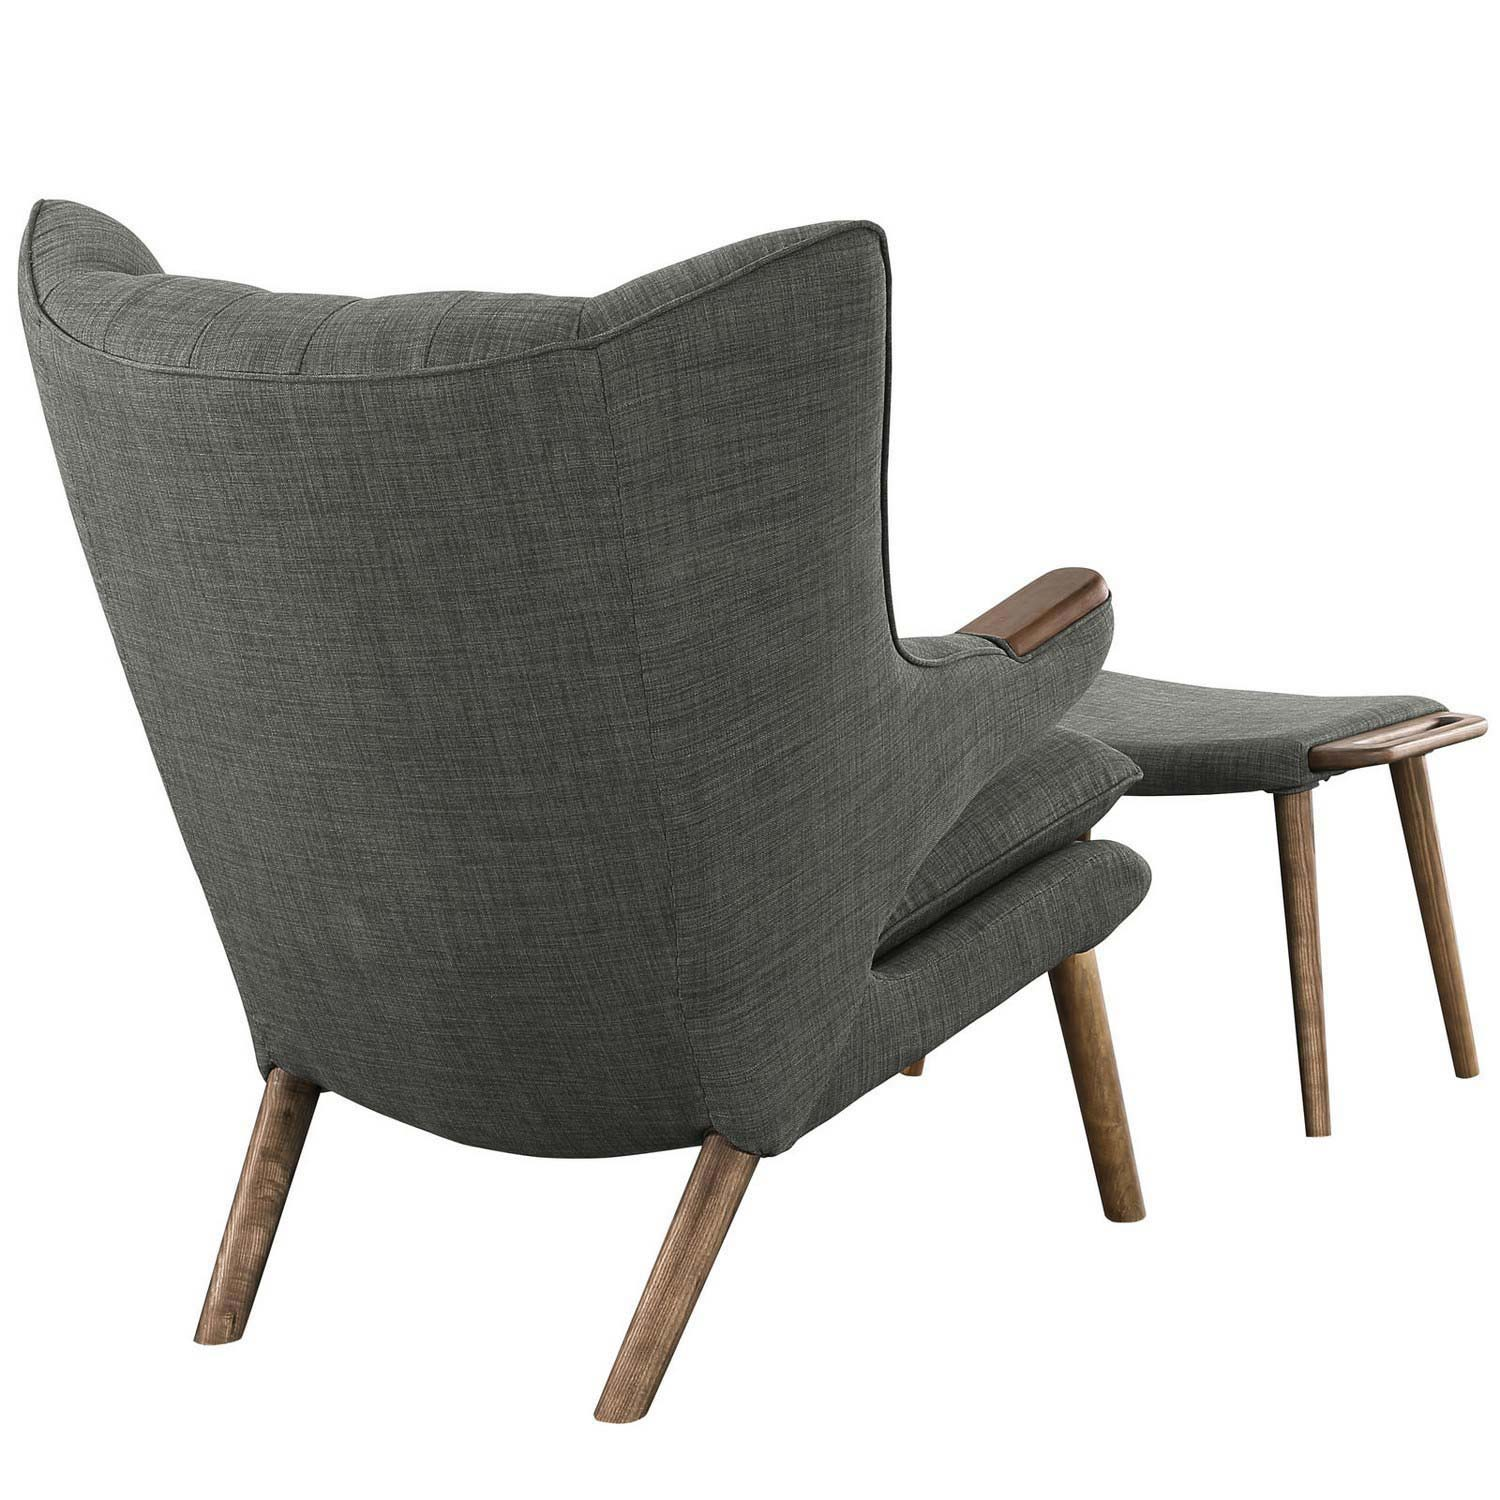 Modway Bear Lounge Chair and Ottoman - Walnut Gray